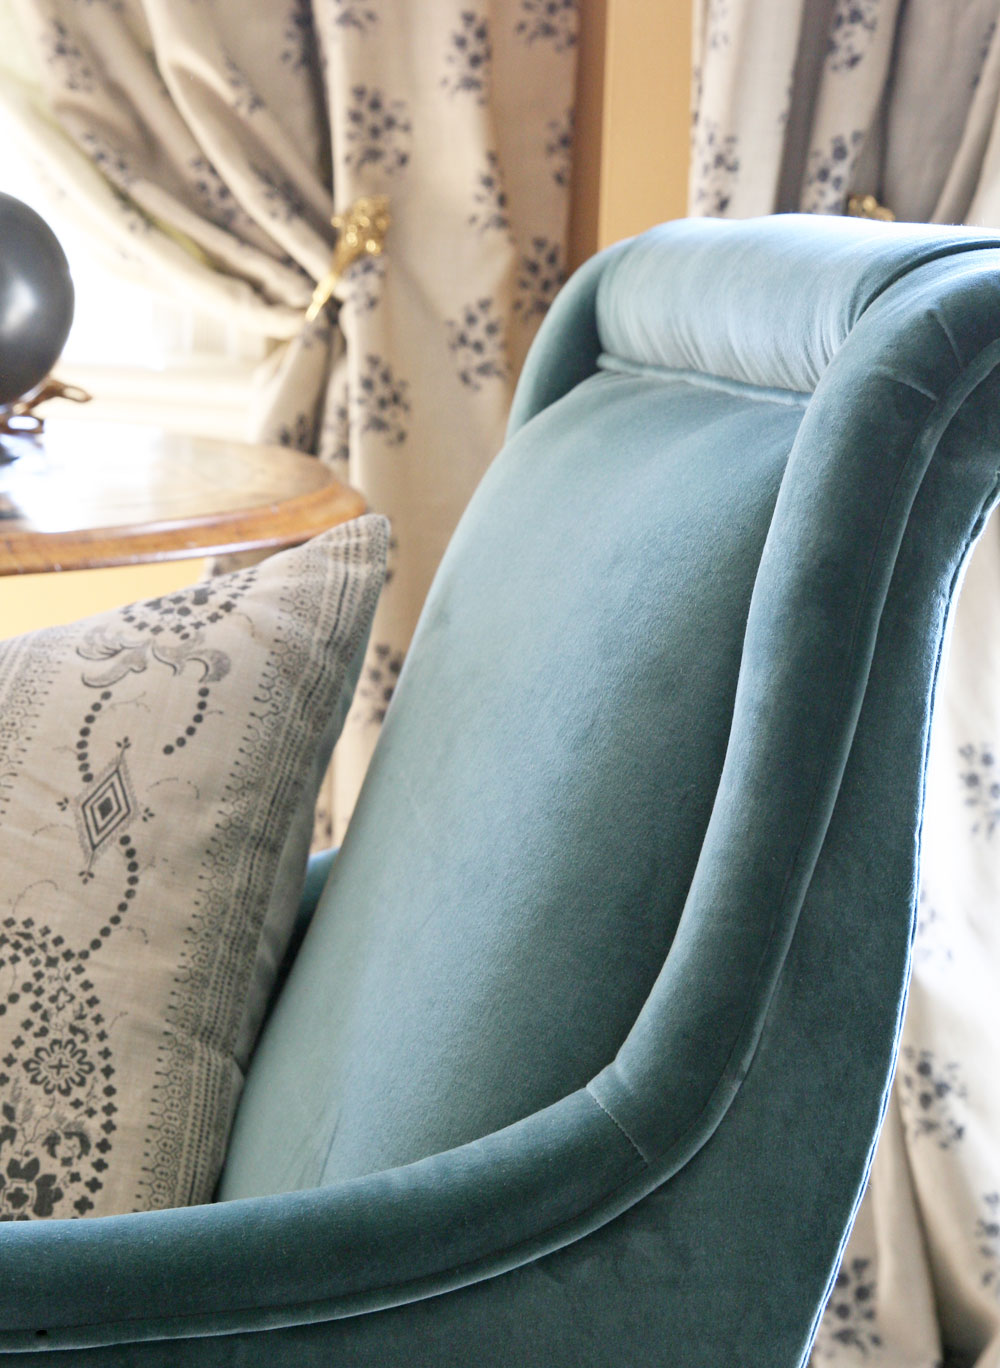 teal-velvet-chair-close-up